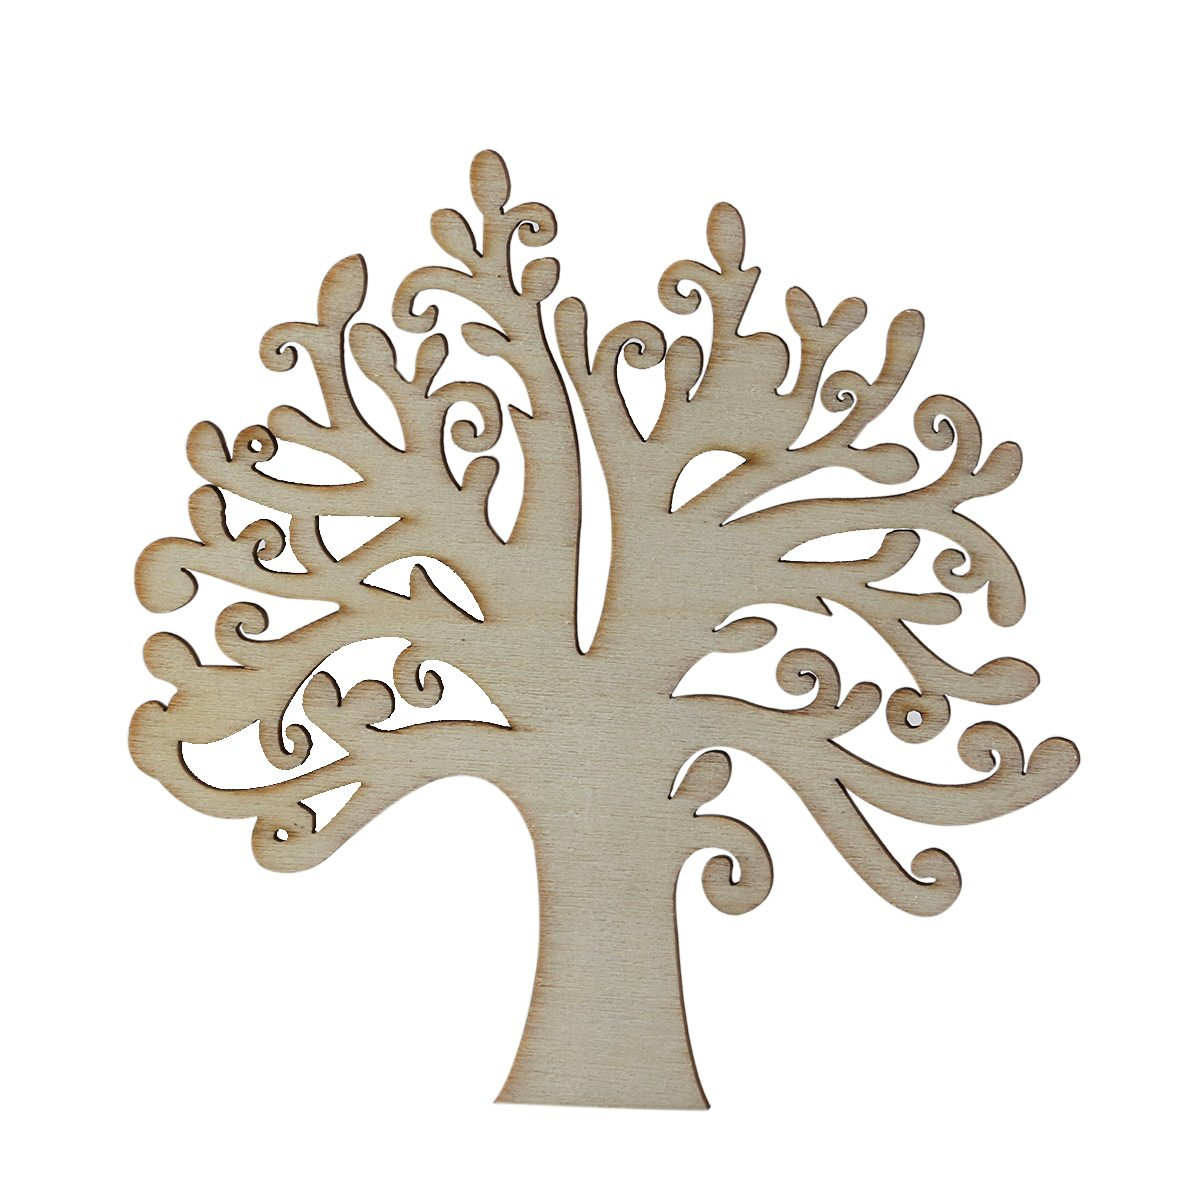 NUOLUX Blank Wooden Tree Embellishments for DIY Crafts Embellishments 10pcs (Wood Color)